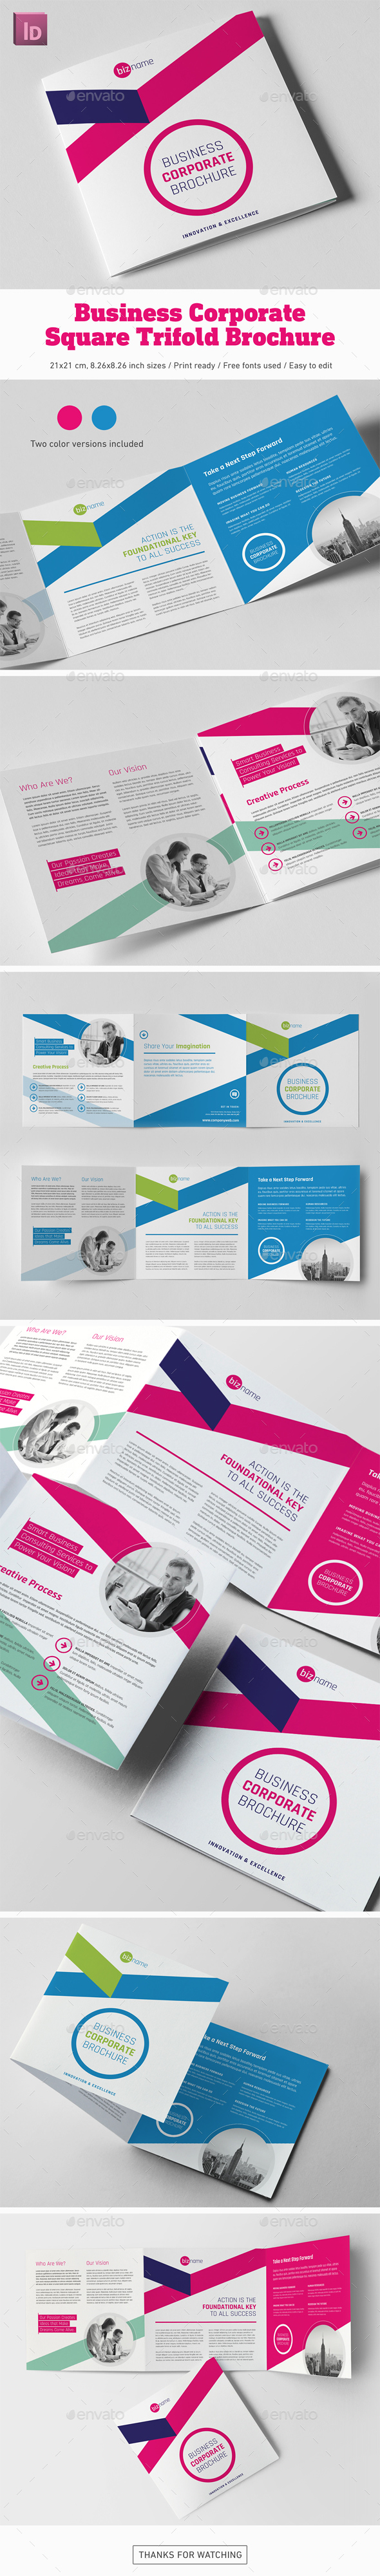 Business Corporate Square Trifold Brochure - Corporate Brochures